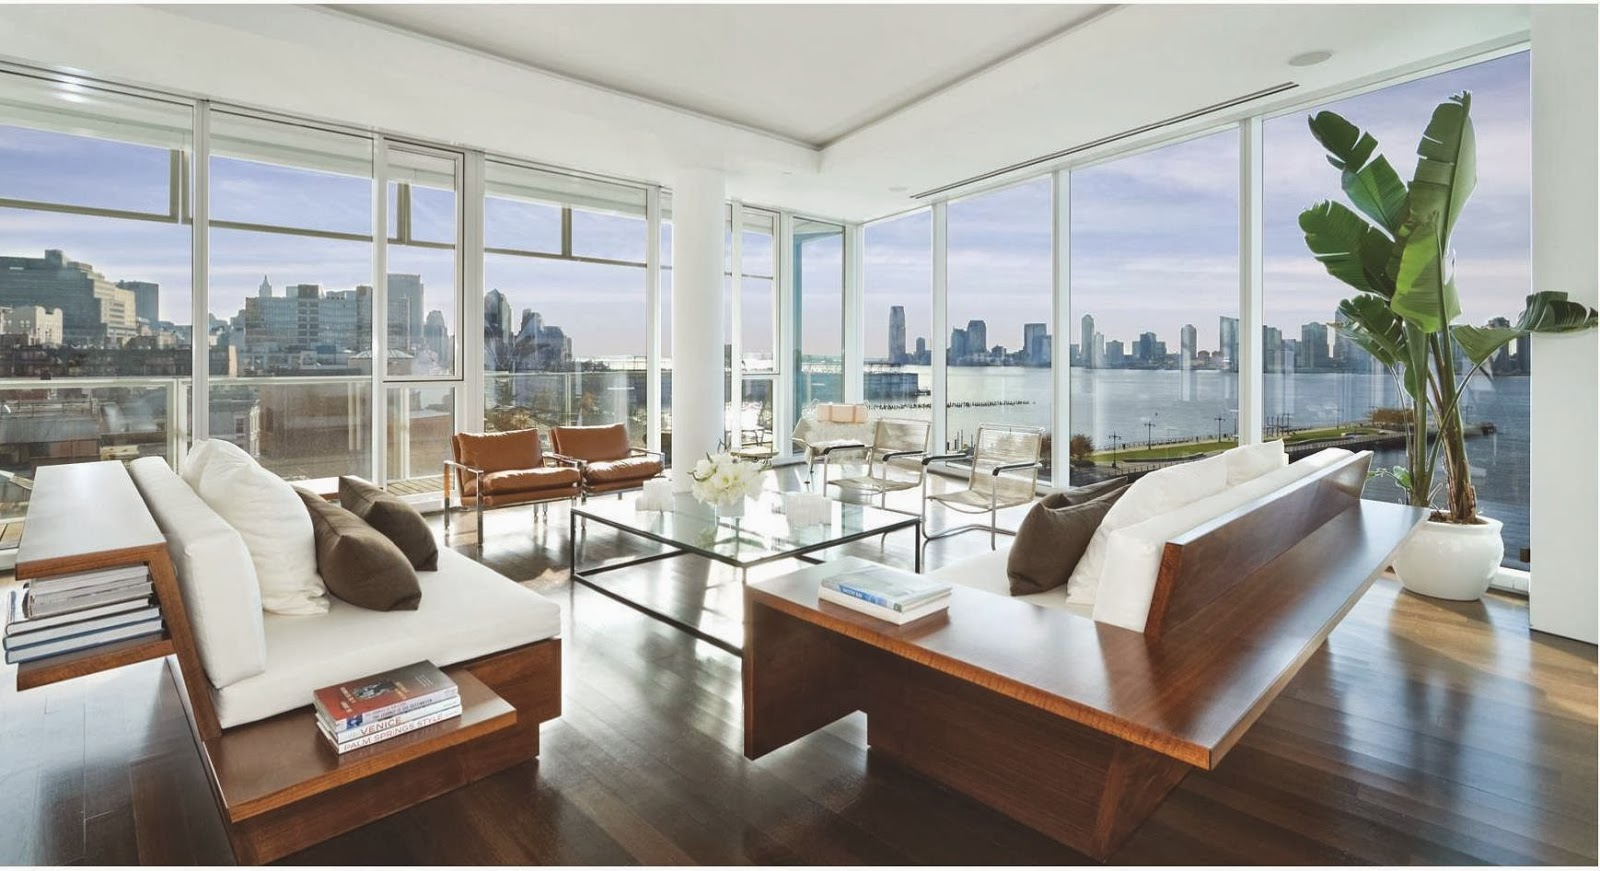 Tips for Selling Your Manhattan Home